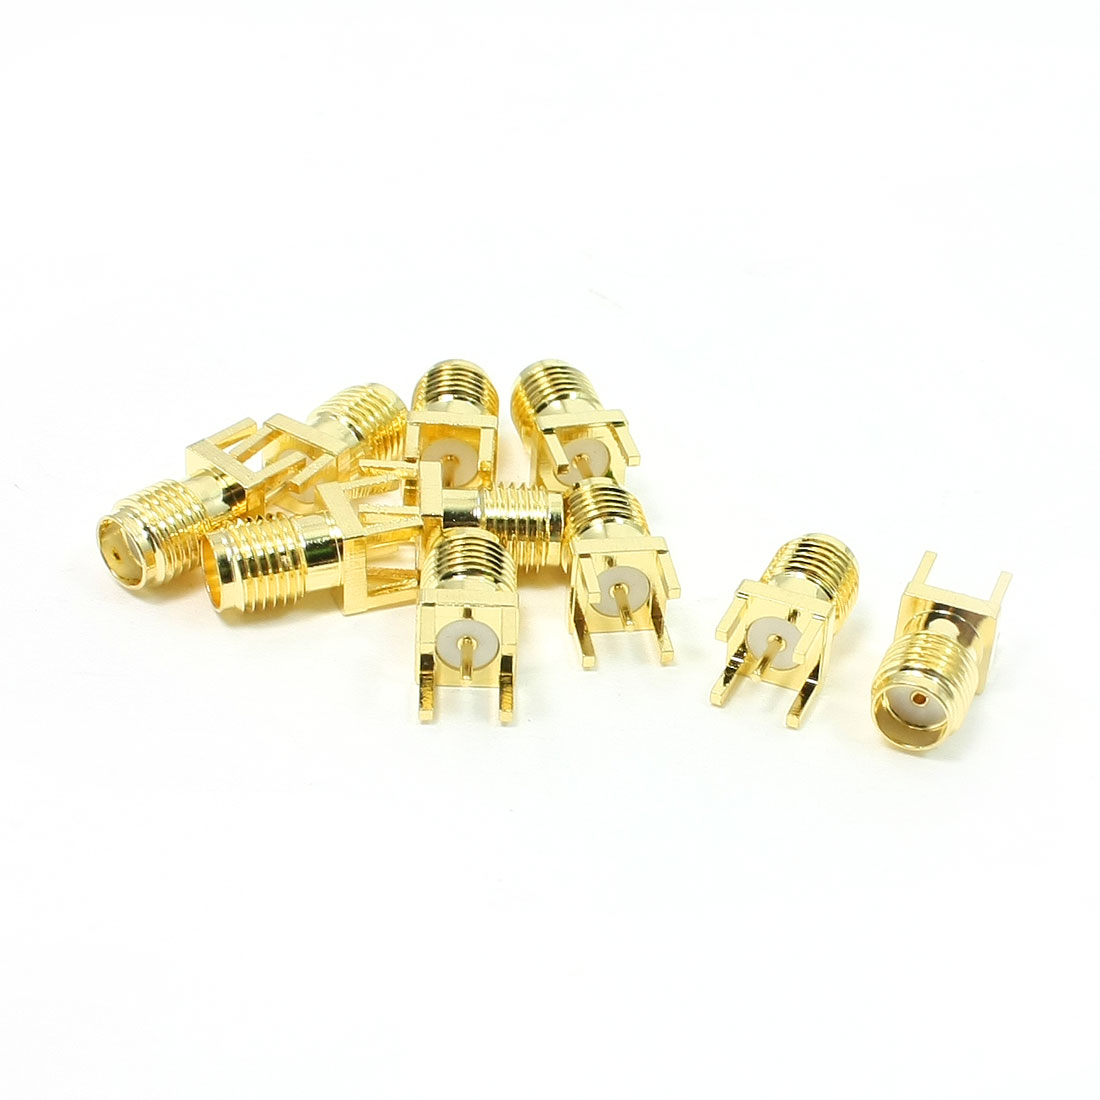 10Pcs Gold Tone Metal 4 Pin SMA Female Straight PCB Mount RF Connector